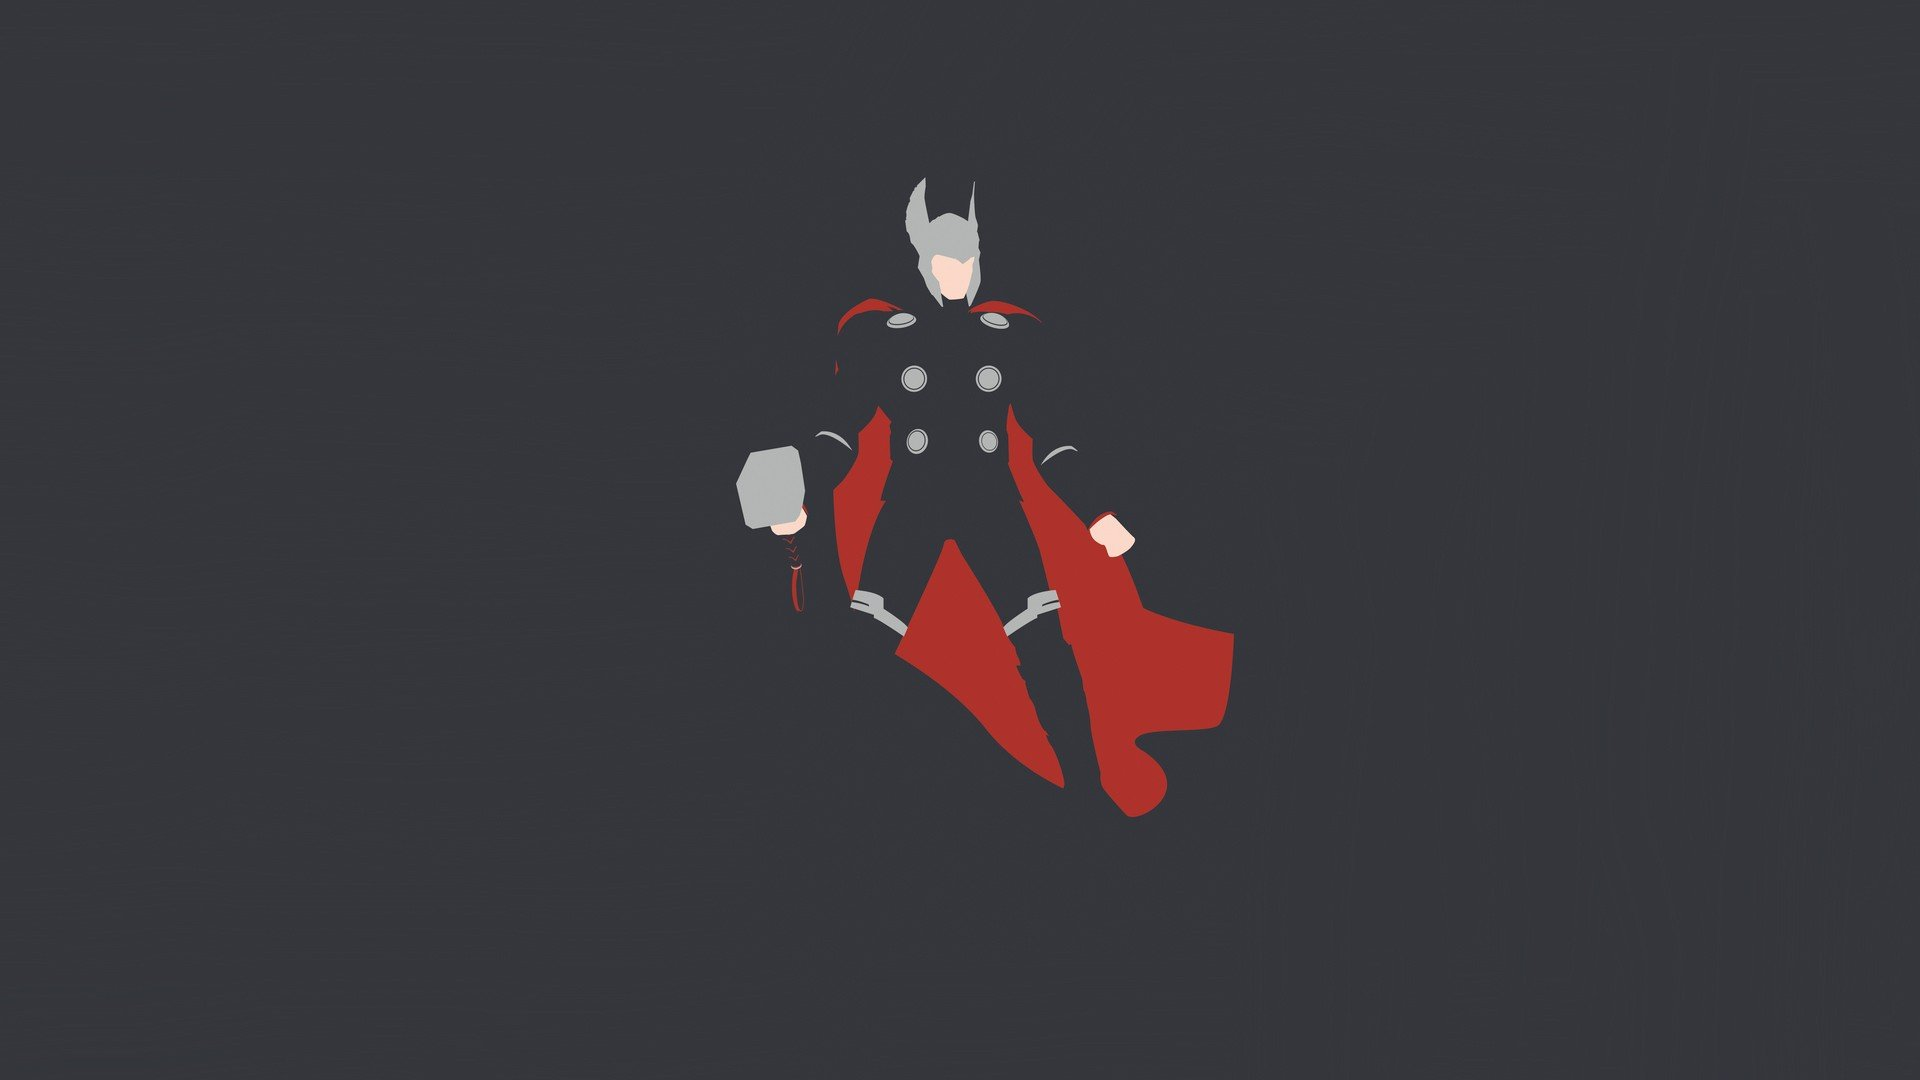 Thor Minimalism Hd HD Artist 4k Wallpapers Images Backgrounds